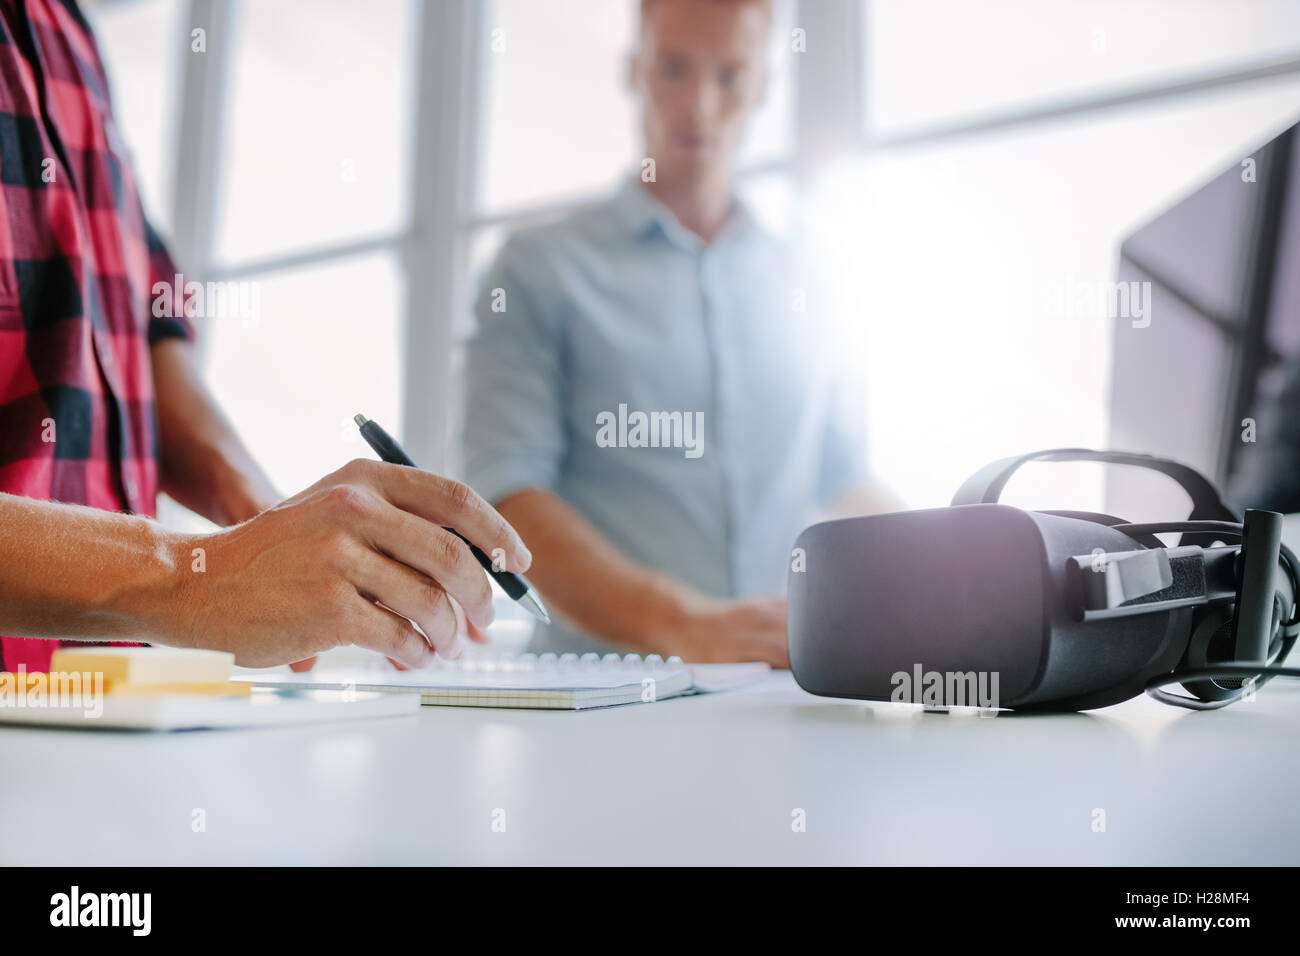 Virtual reality glasses on table with two men working in office.  Man writing colleague using computer in background. - Stock Image